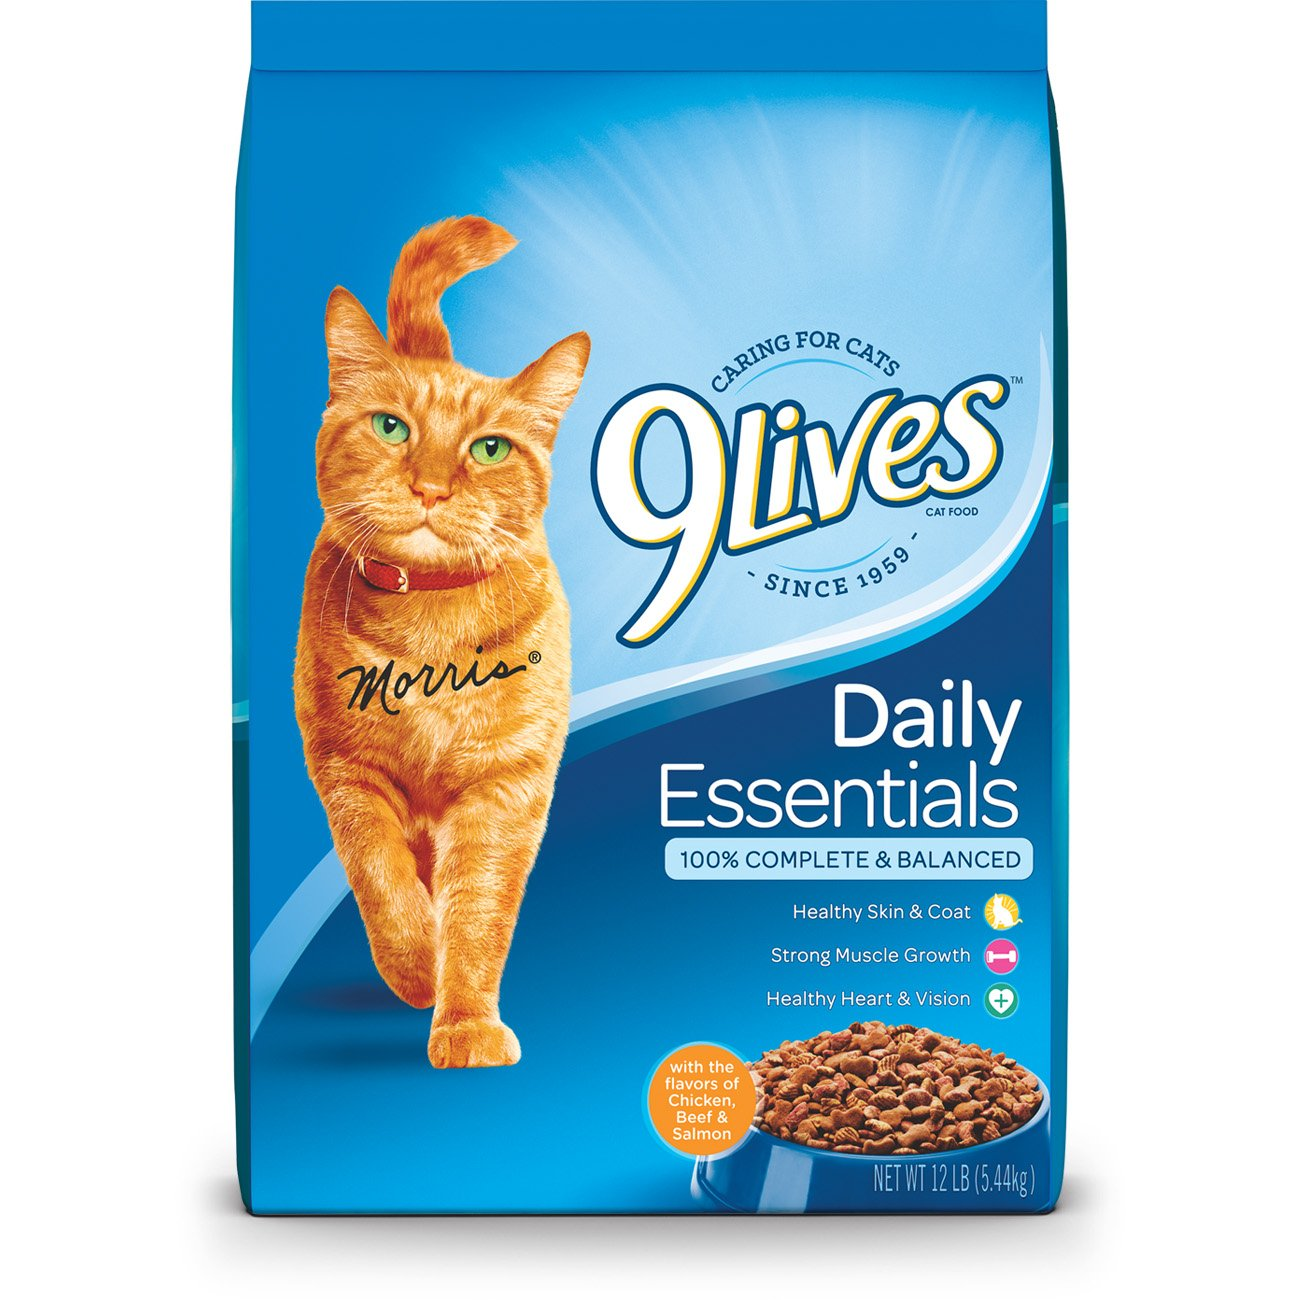 How to give dry food